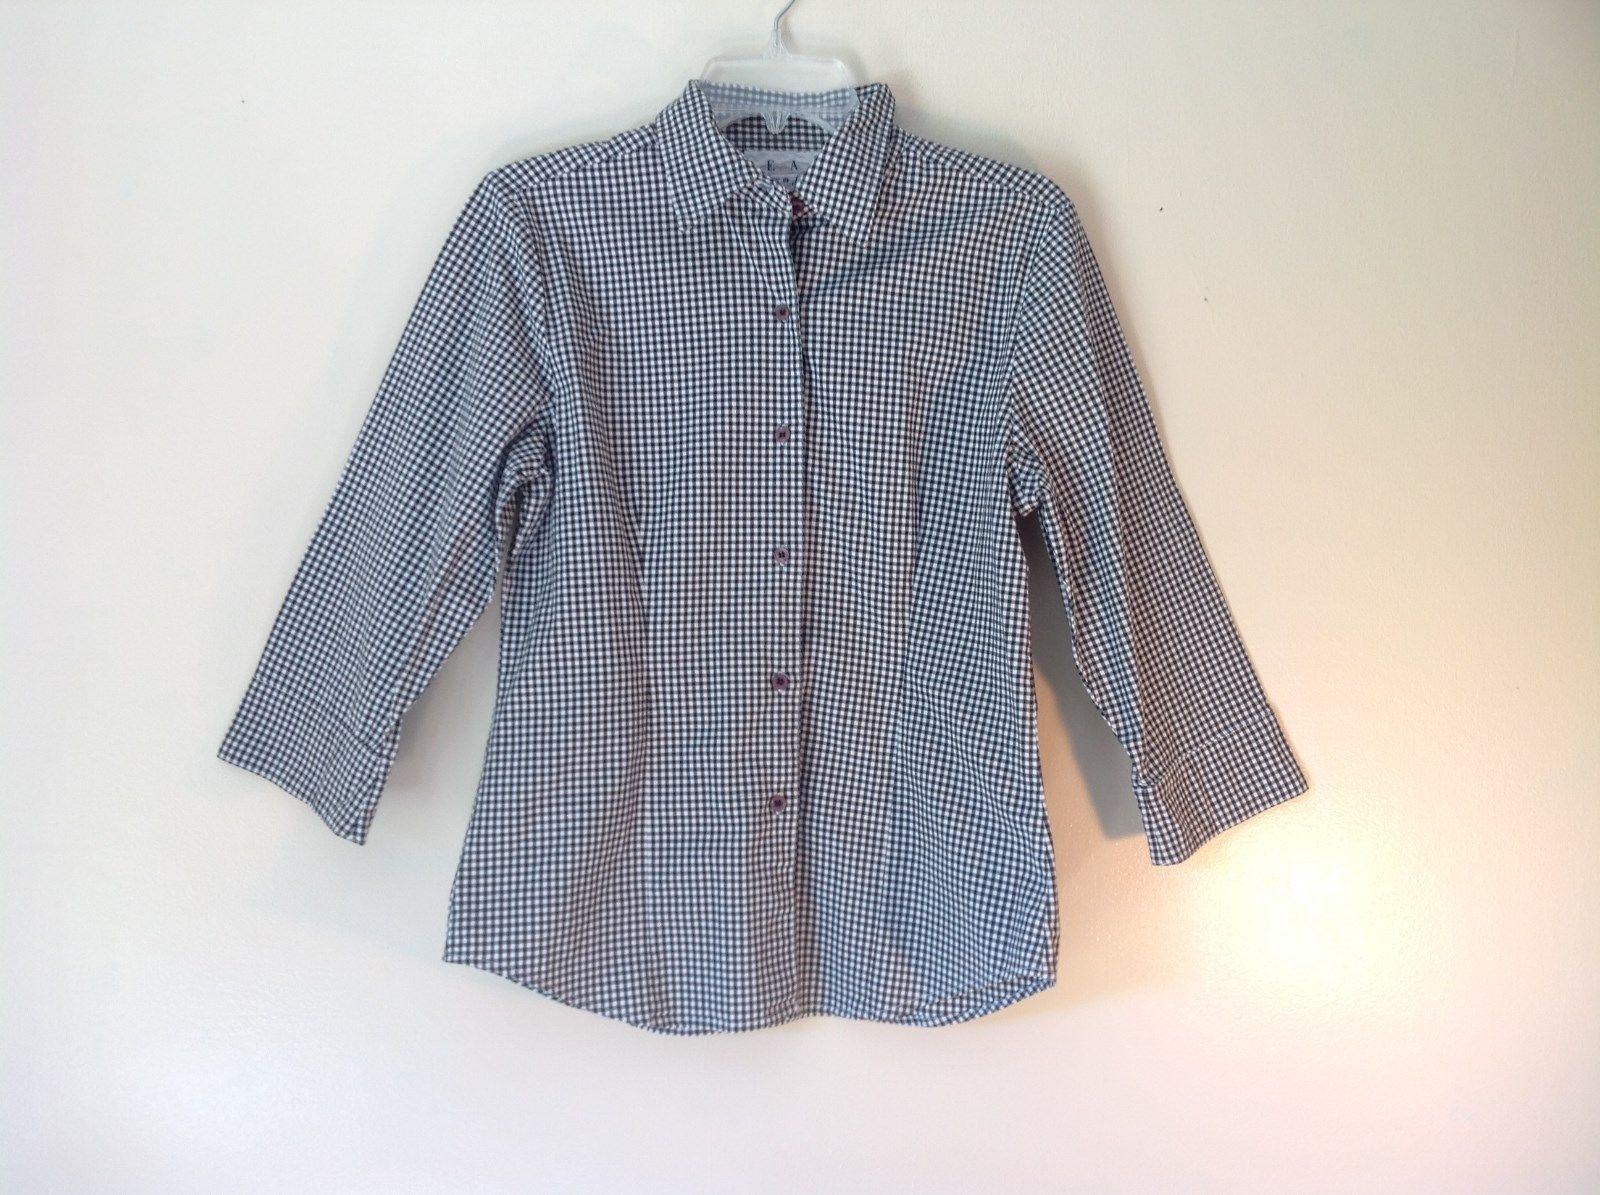 Very Cute Real Comfort Black and White Checkered Button Up Shirt Size Small